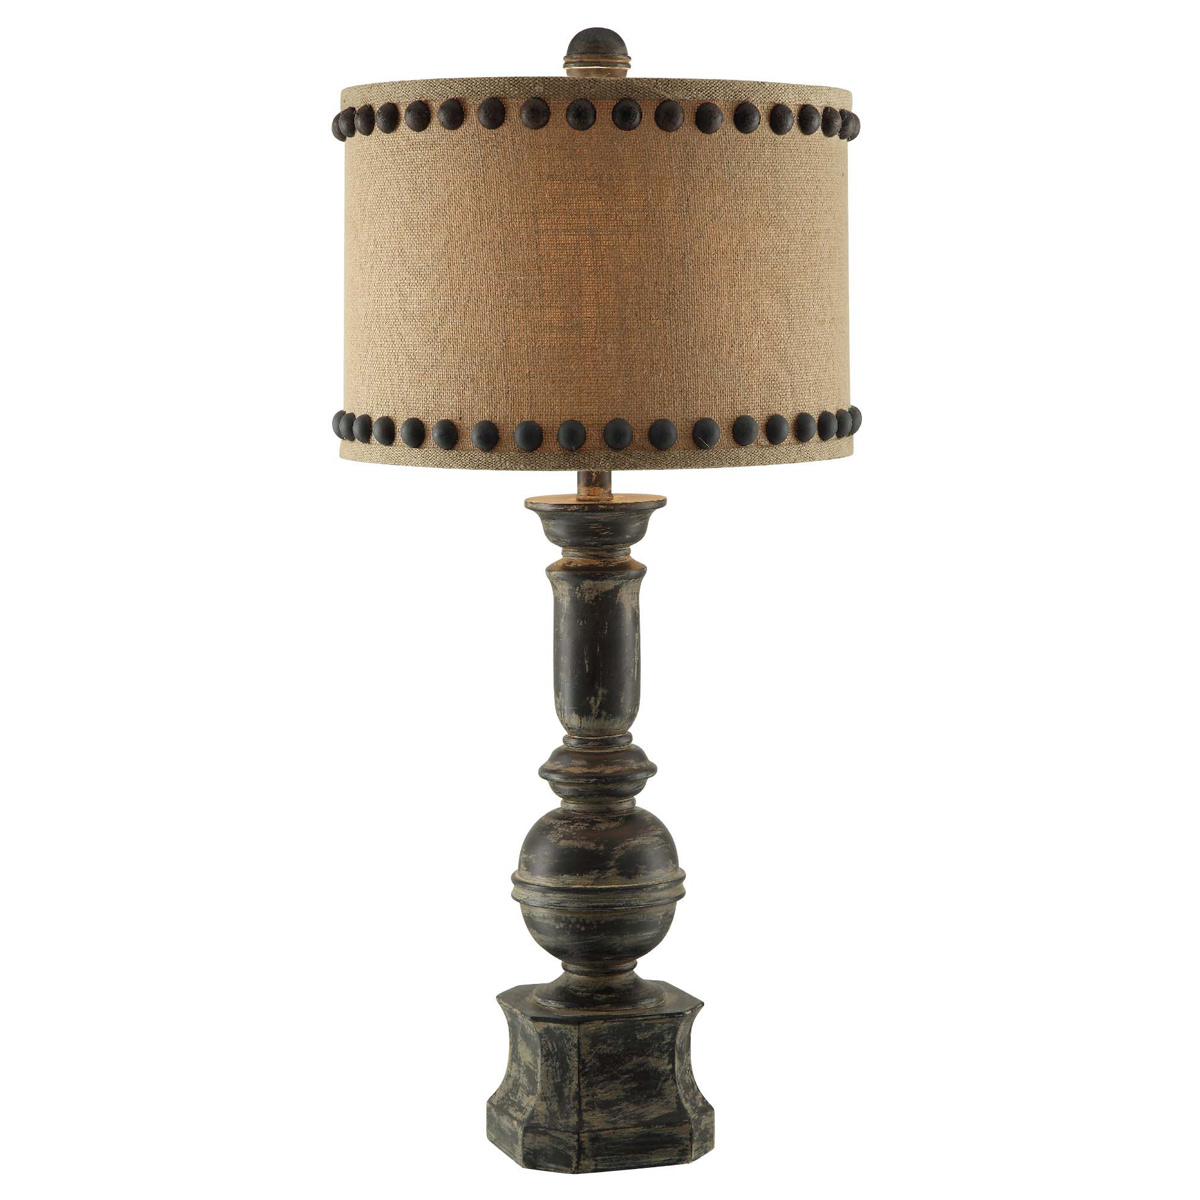 Iron Baluster Table Lamp